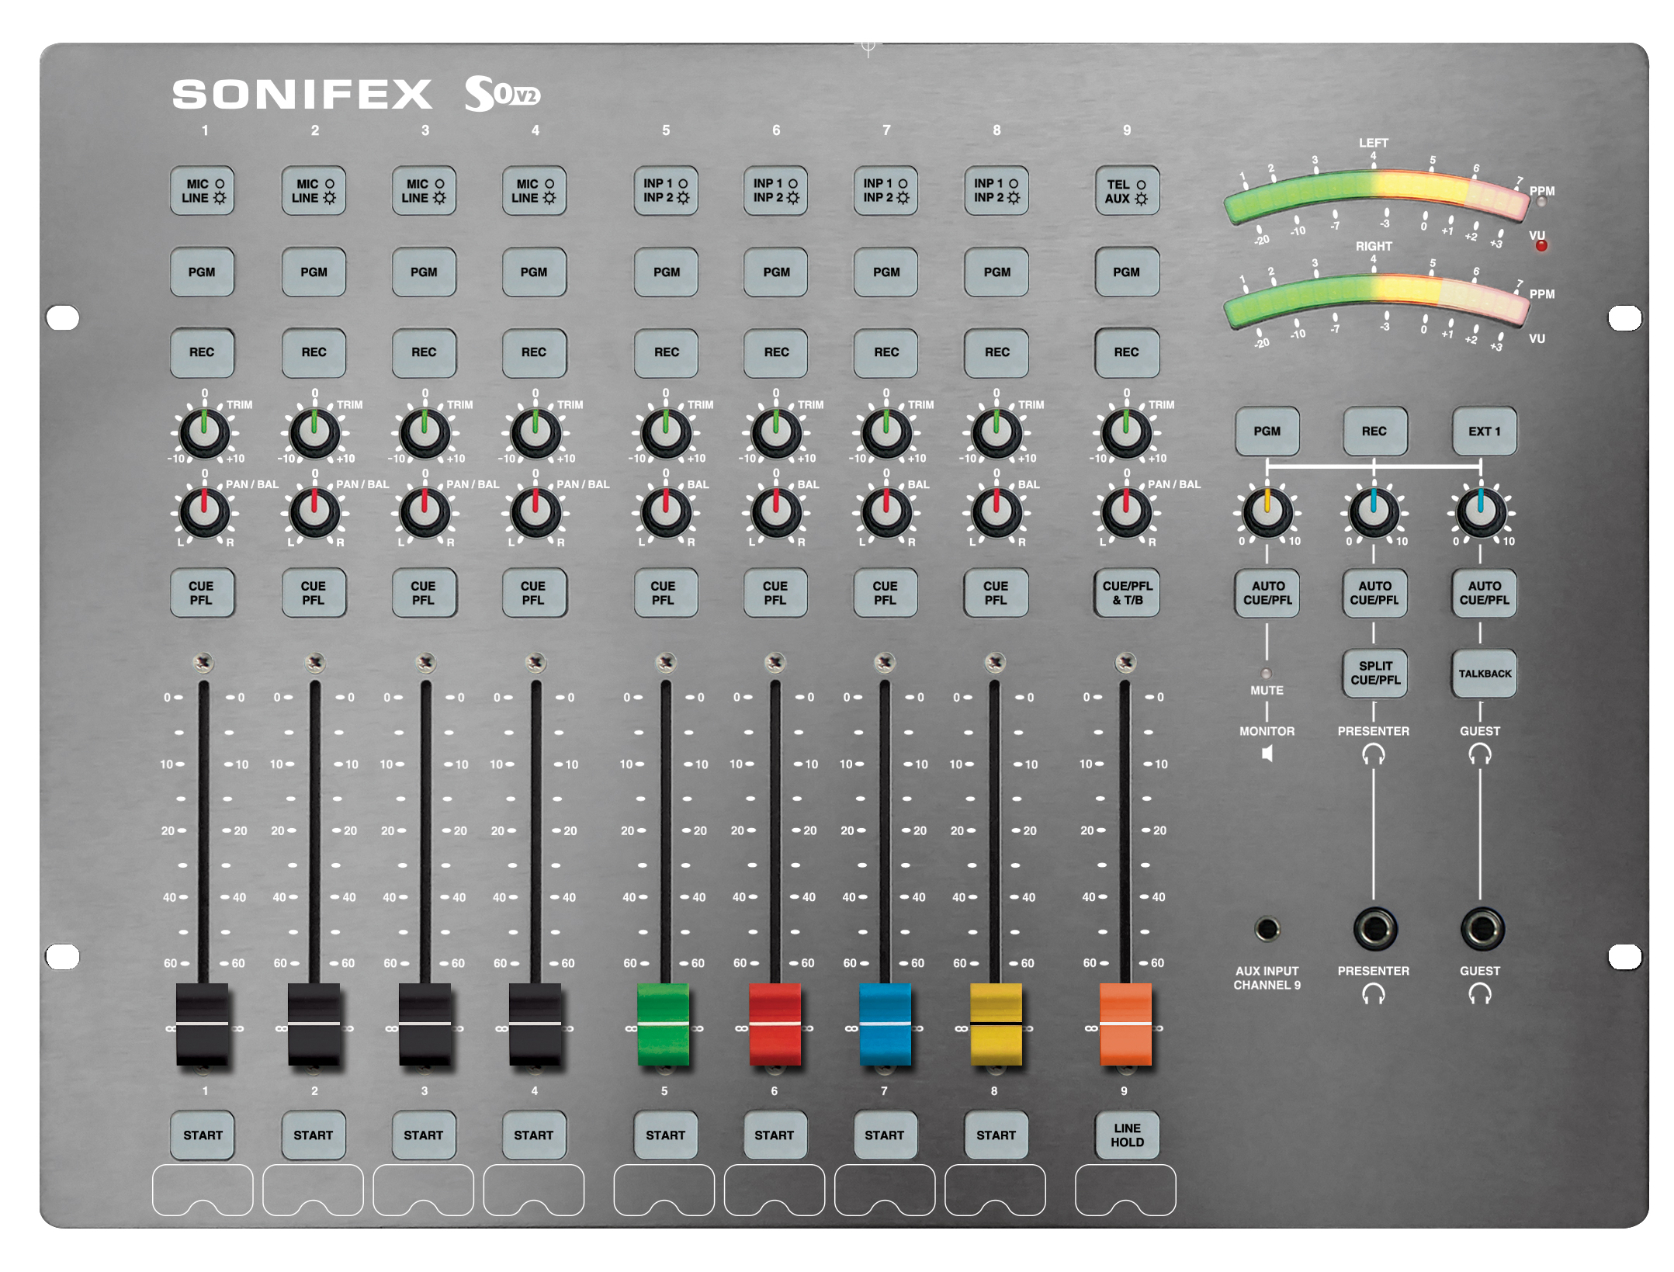 Sonifex S0v2 Digital Analogue Radio Broadcast Mixer Hybrid Telephone Circuit Hands Over Tech High Resolution Top